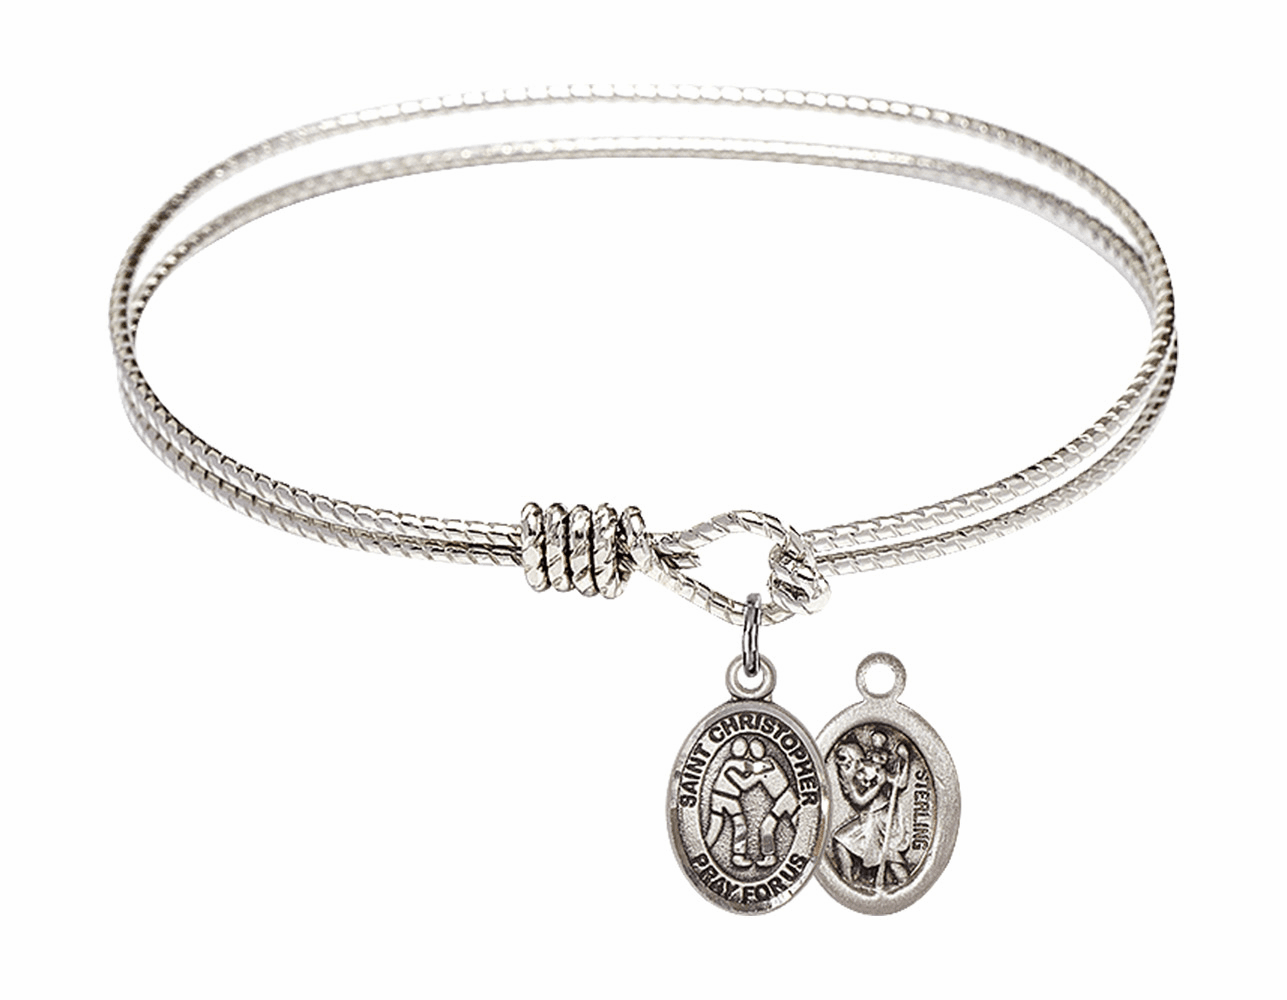 Twist Round Eye Hook St Christopher Wrestling Bangle Charm Bracelet by Bliss